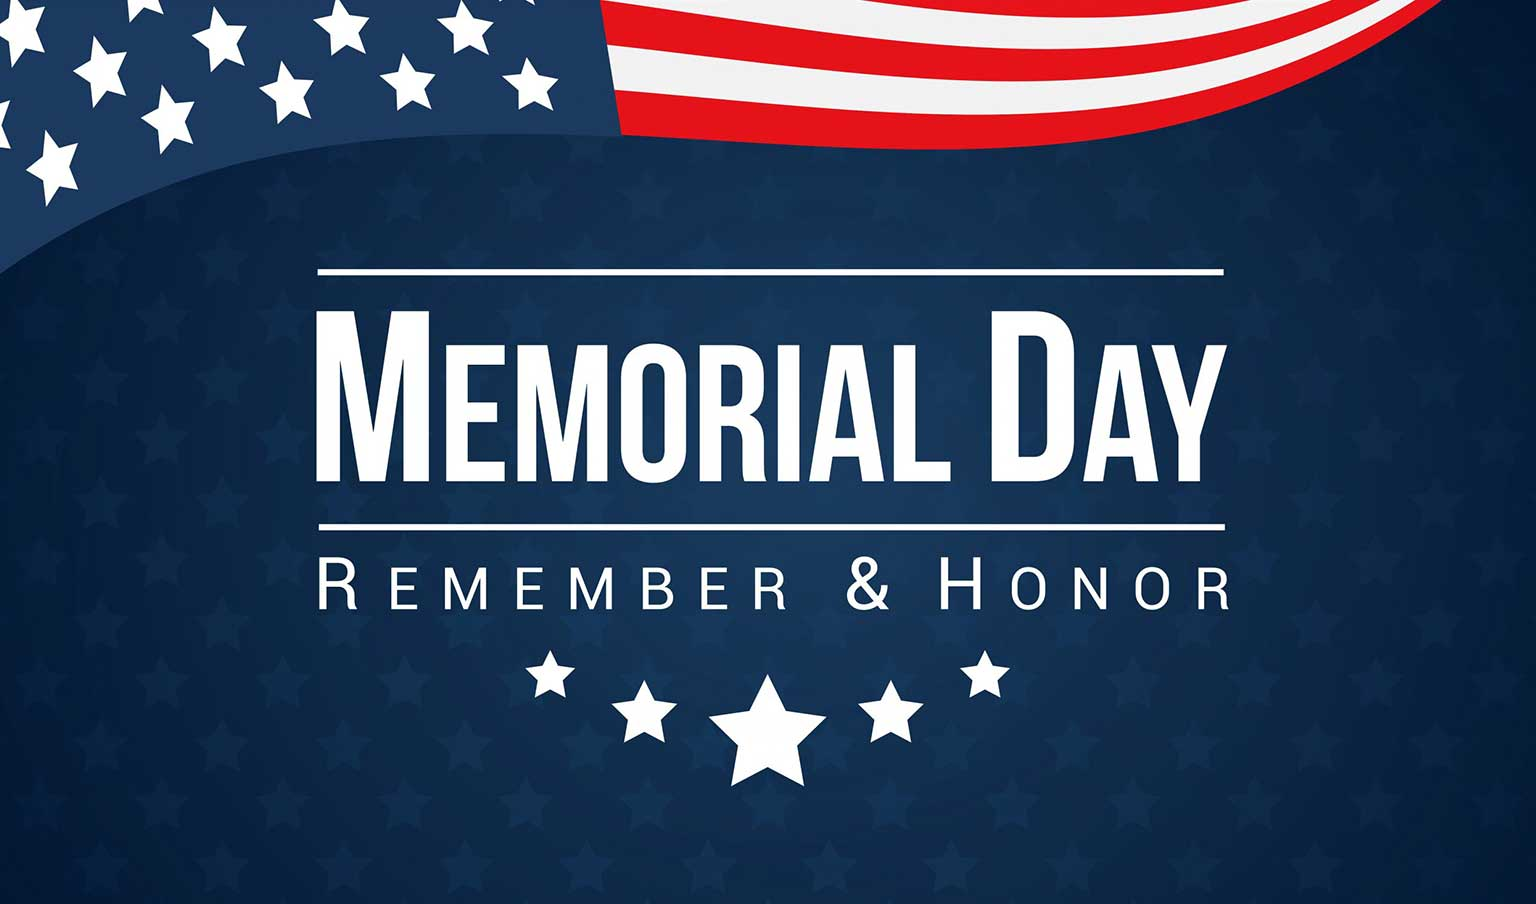 Dark blue background with American flag on top portion of image. Below flag is white text that reads ' Memorial Day  Remember and Honor.' White stars under text in a half circle formation.